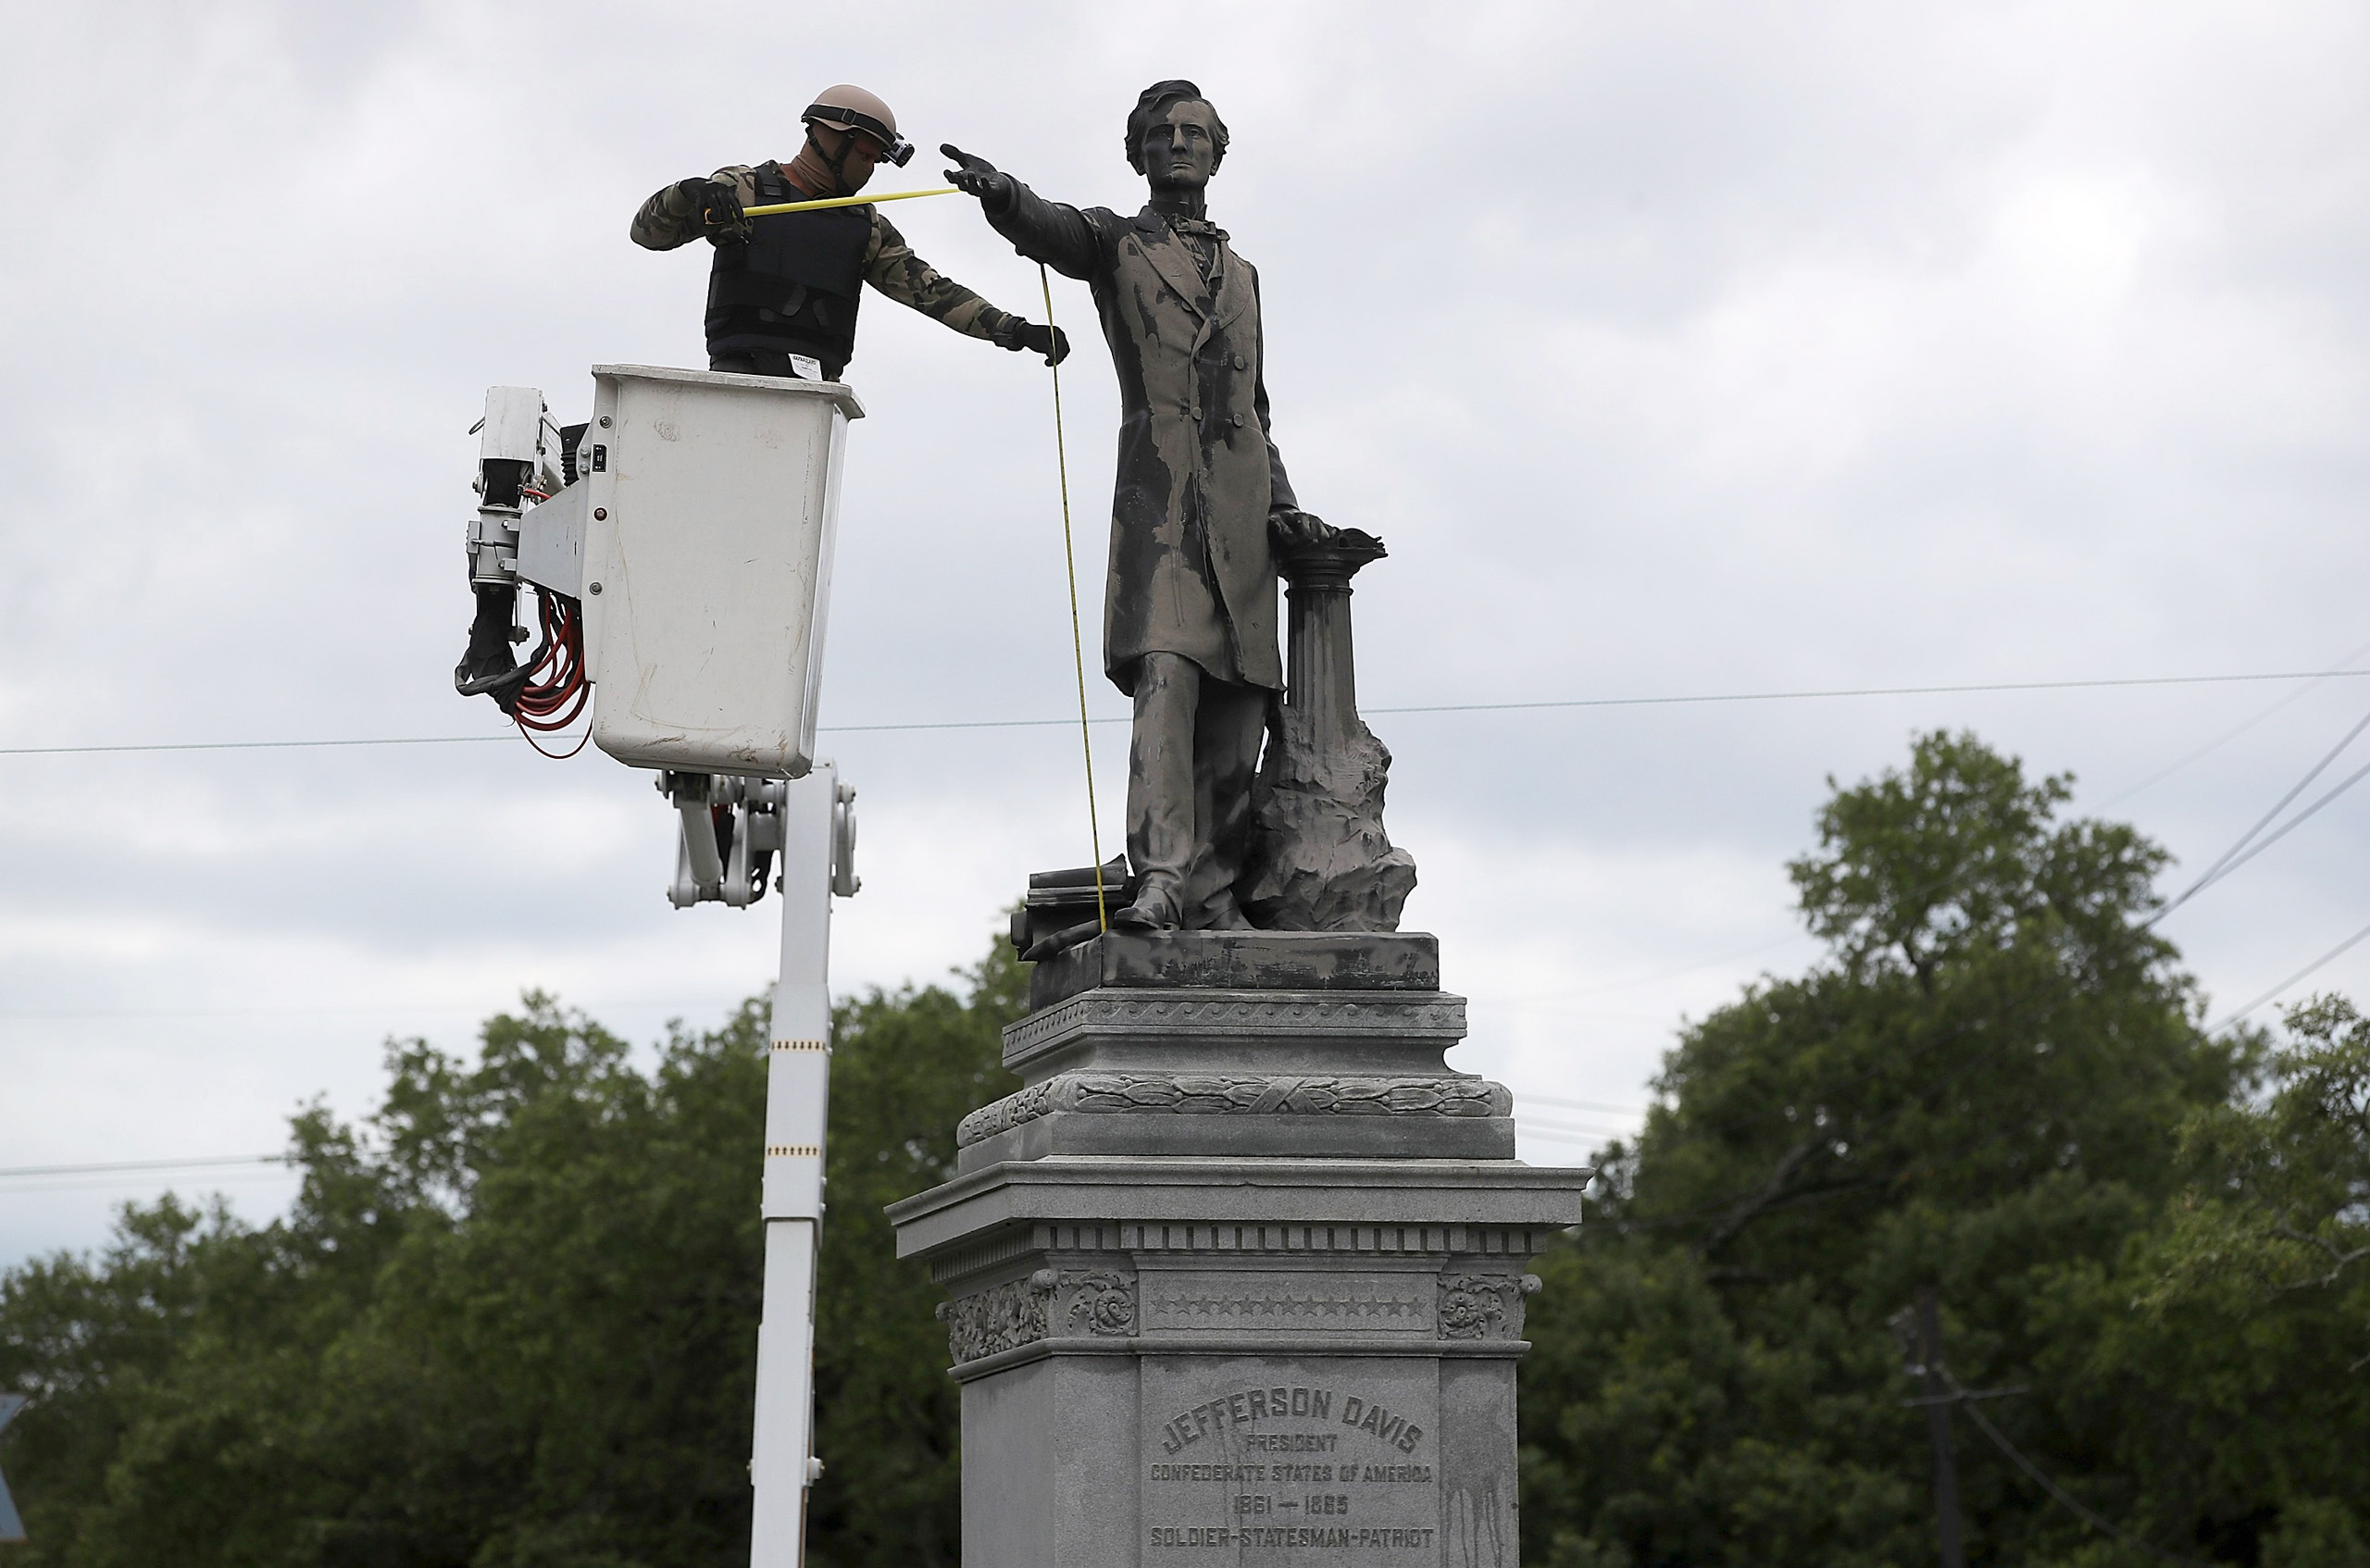 A worker in body armor measures New Orleans' Jefferson Davis monument for removal